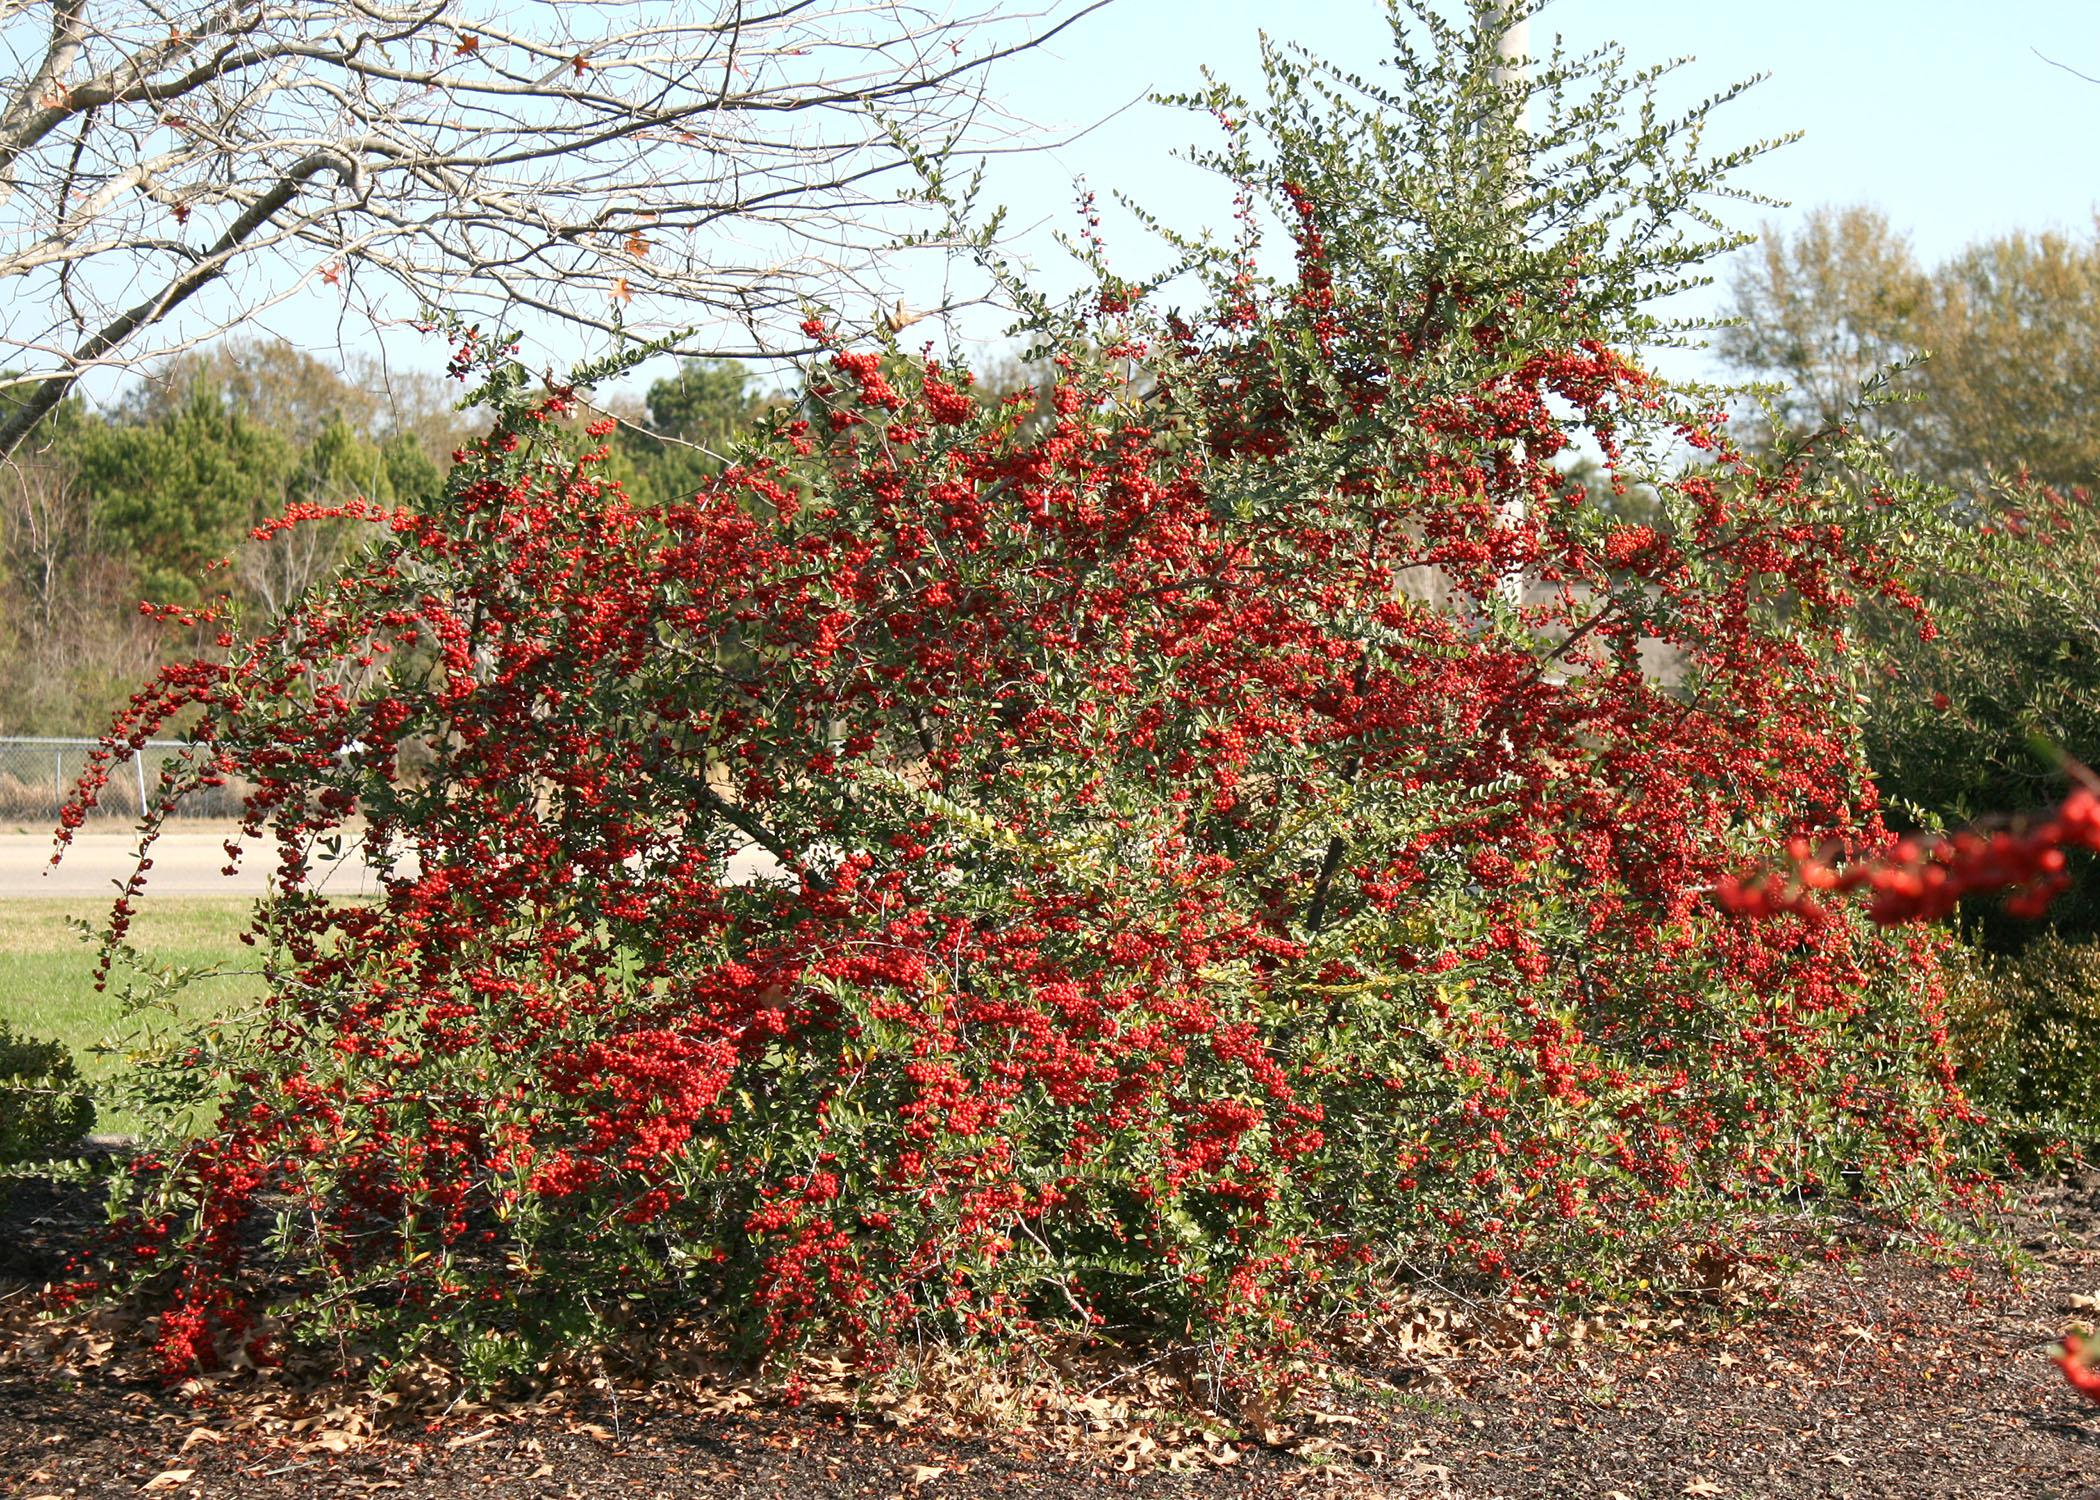 The heavy fruit clusters of Pyracantha seem to drip off the branches, adding beauty and interest to any winter landscape. (Photo by MSU Extension Service/Gary Bachman)